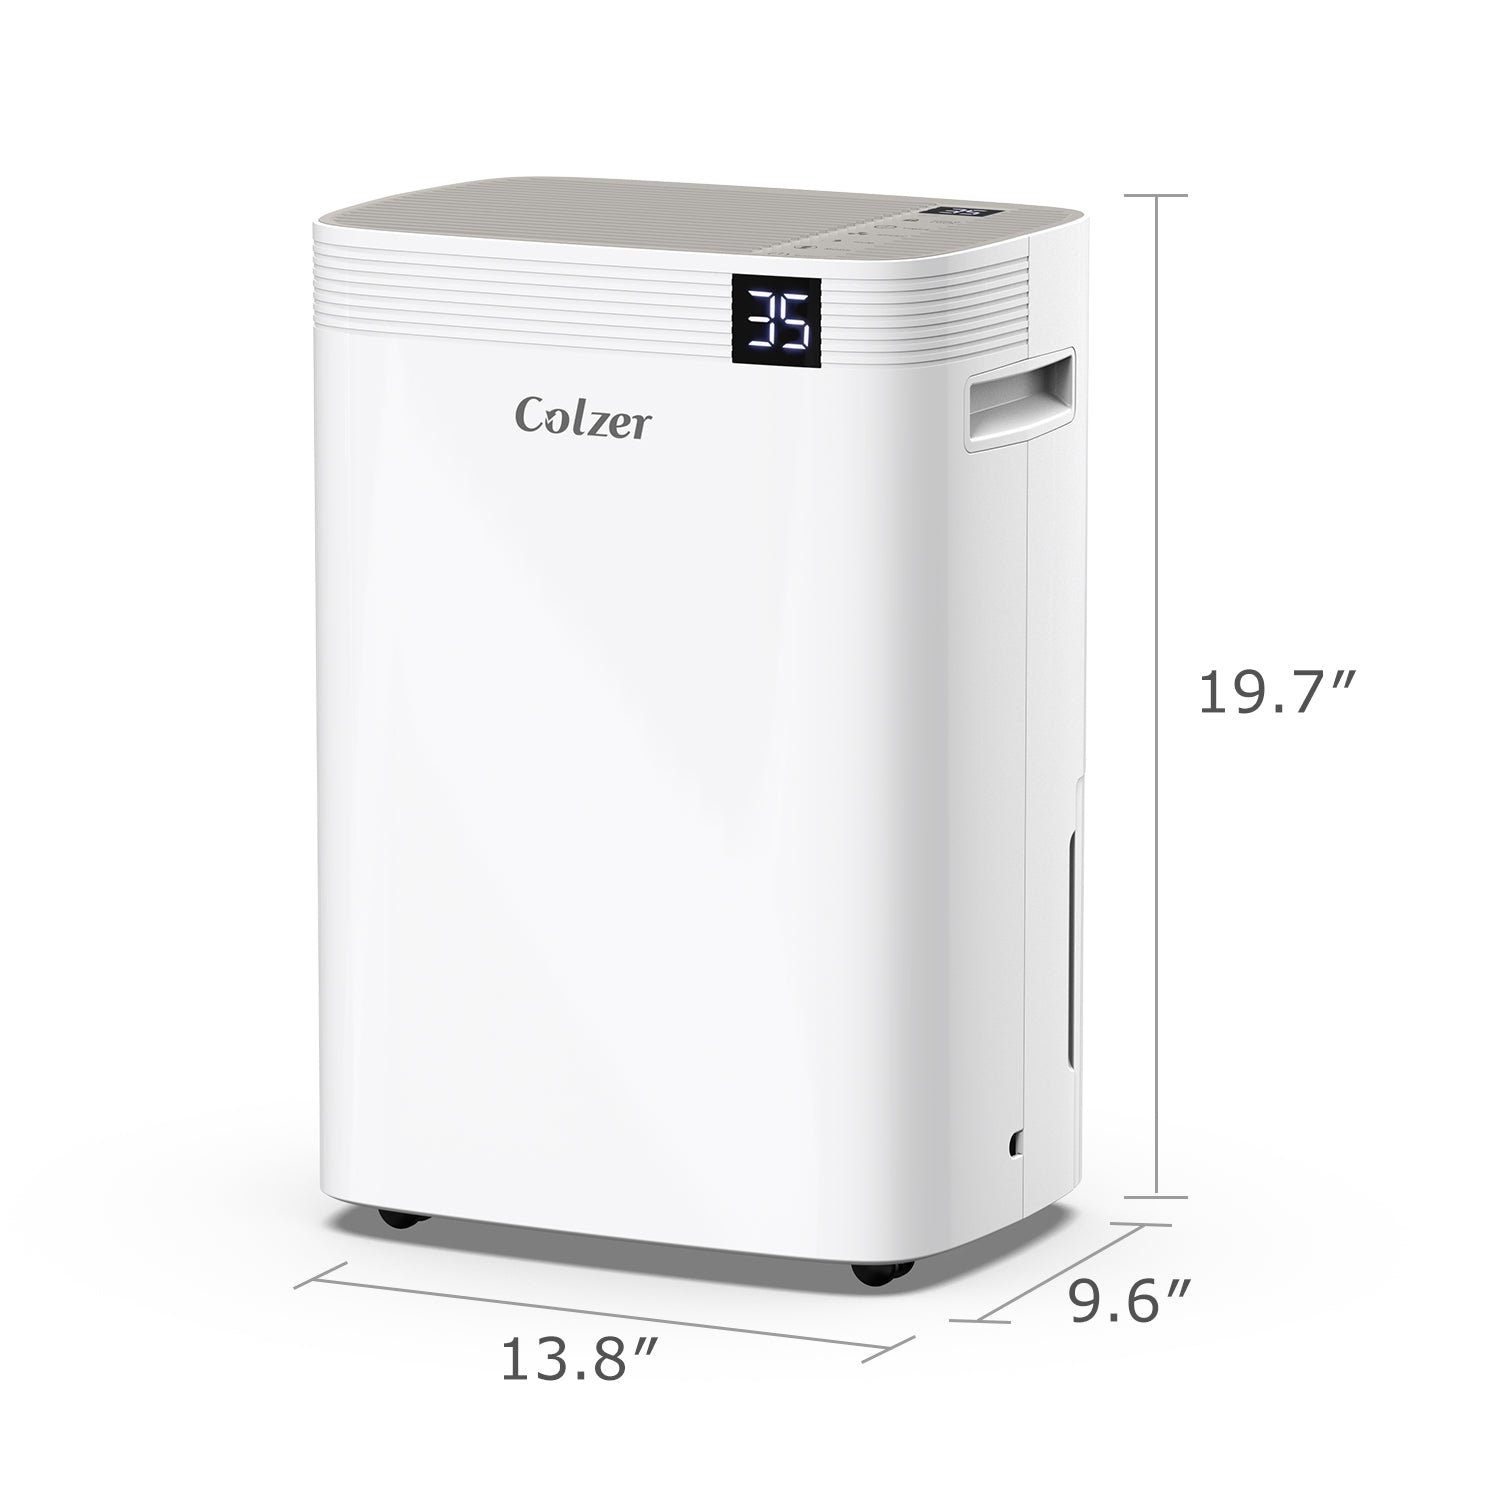 30 Pint Portable Dehumidifier for Basement - Colzer